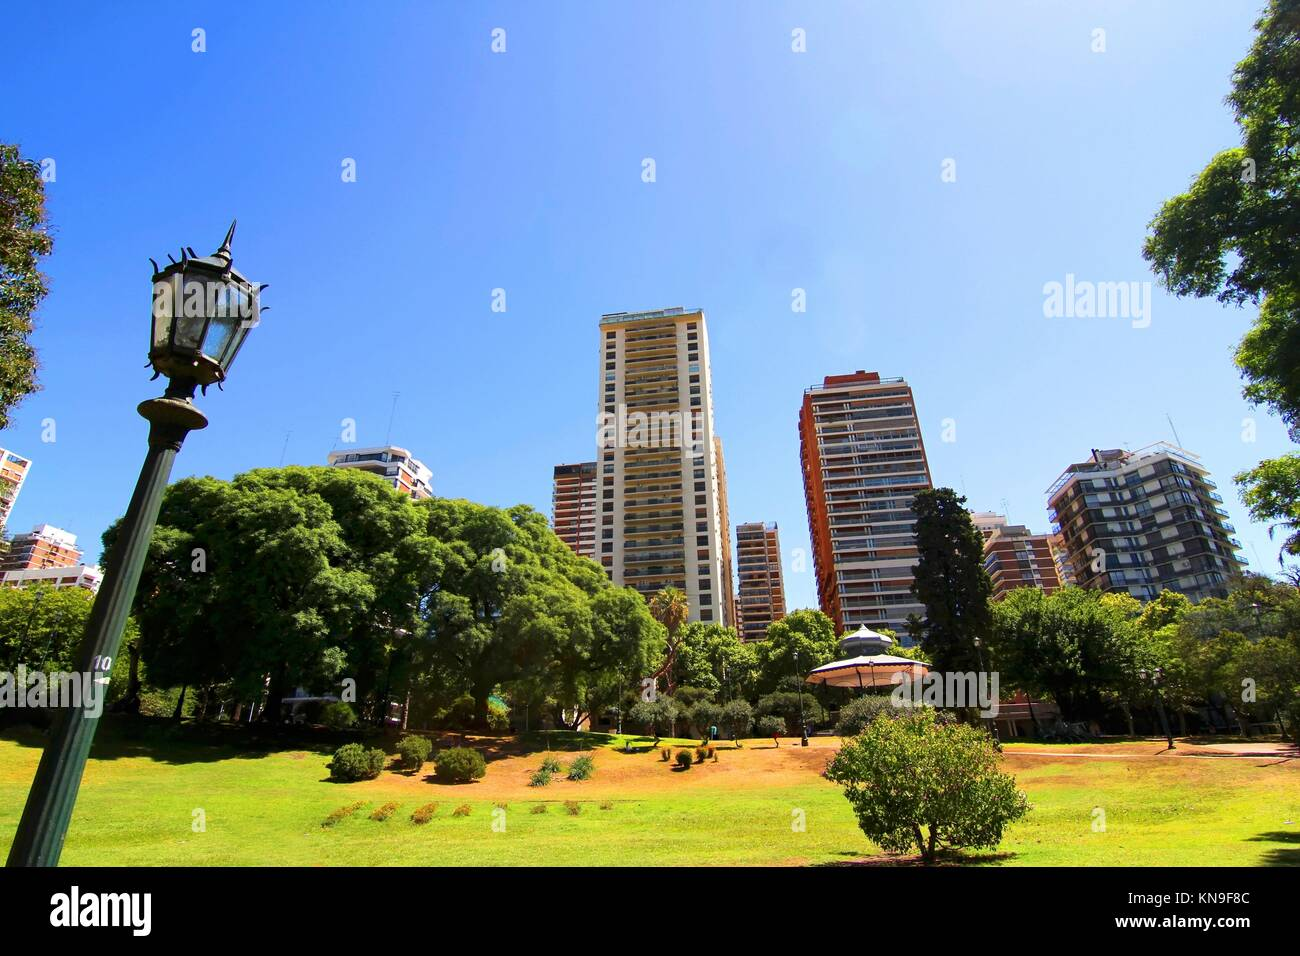 The Plaza Barrancas de Belgrano in Buenos Aires, Argentina. - Stock Image